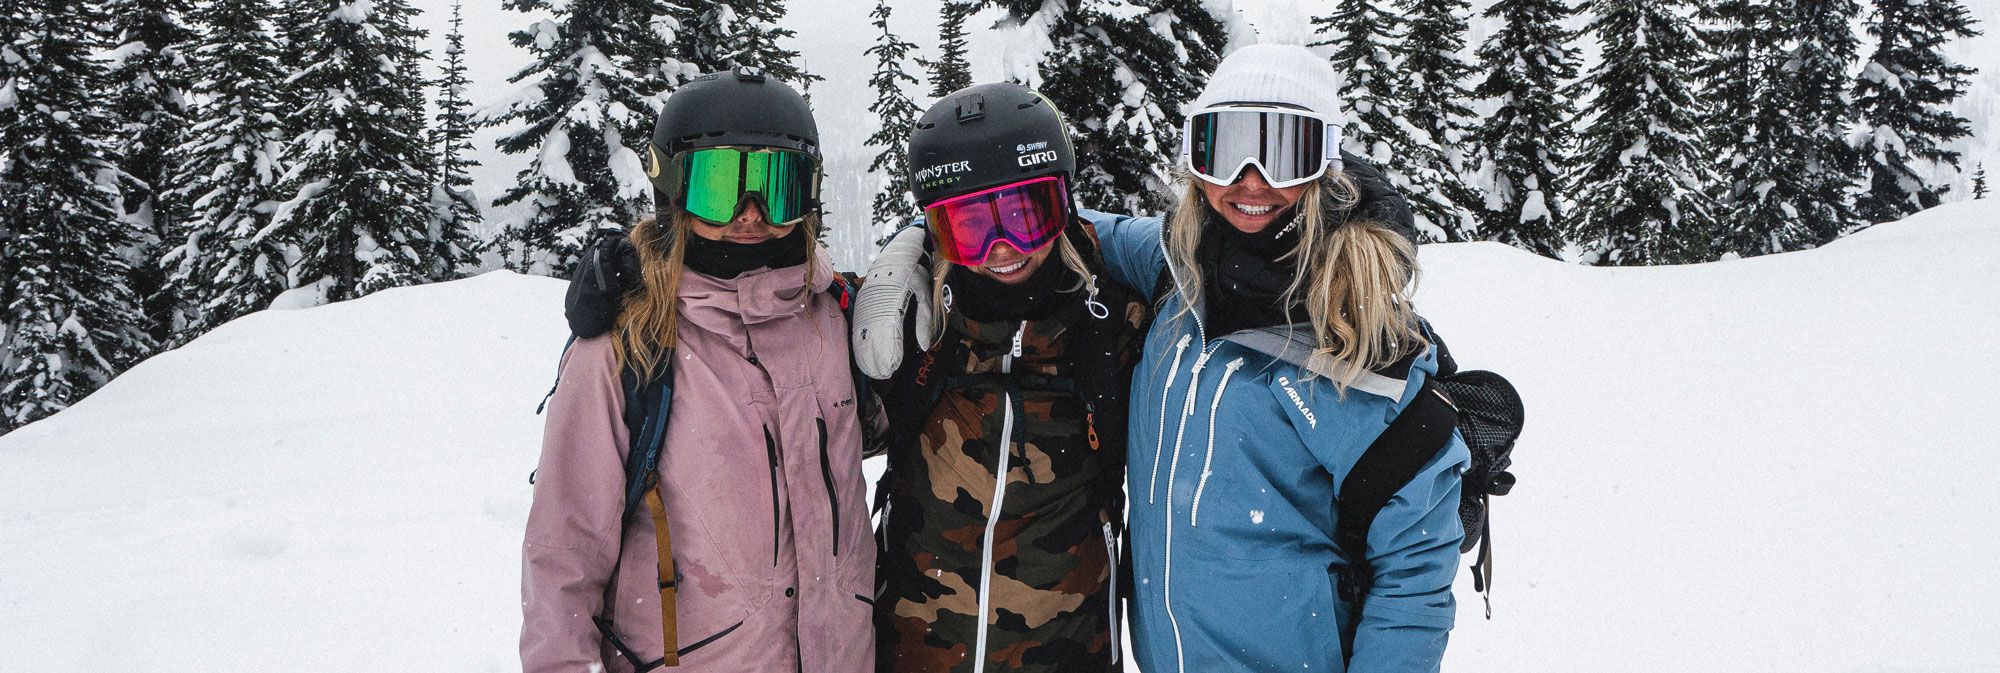 3 women in winter outdoor gear smiling in the snow